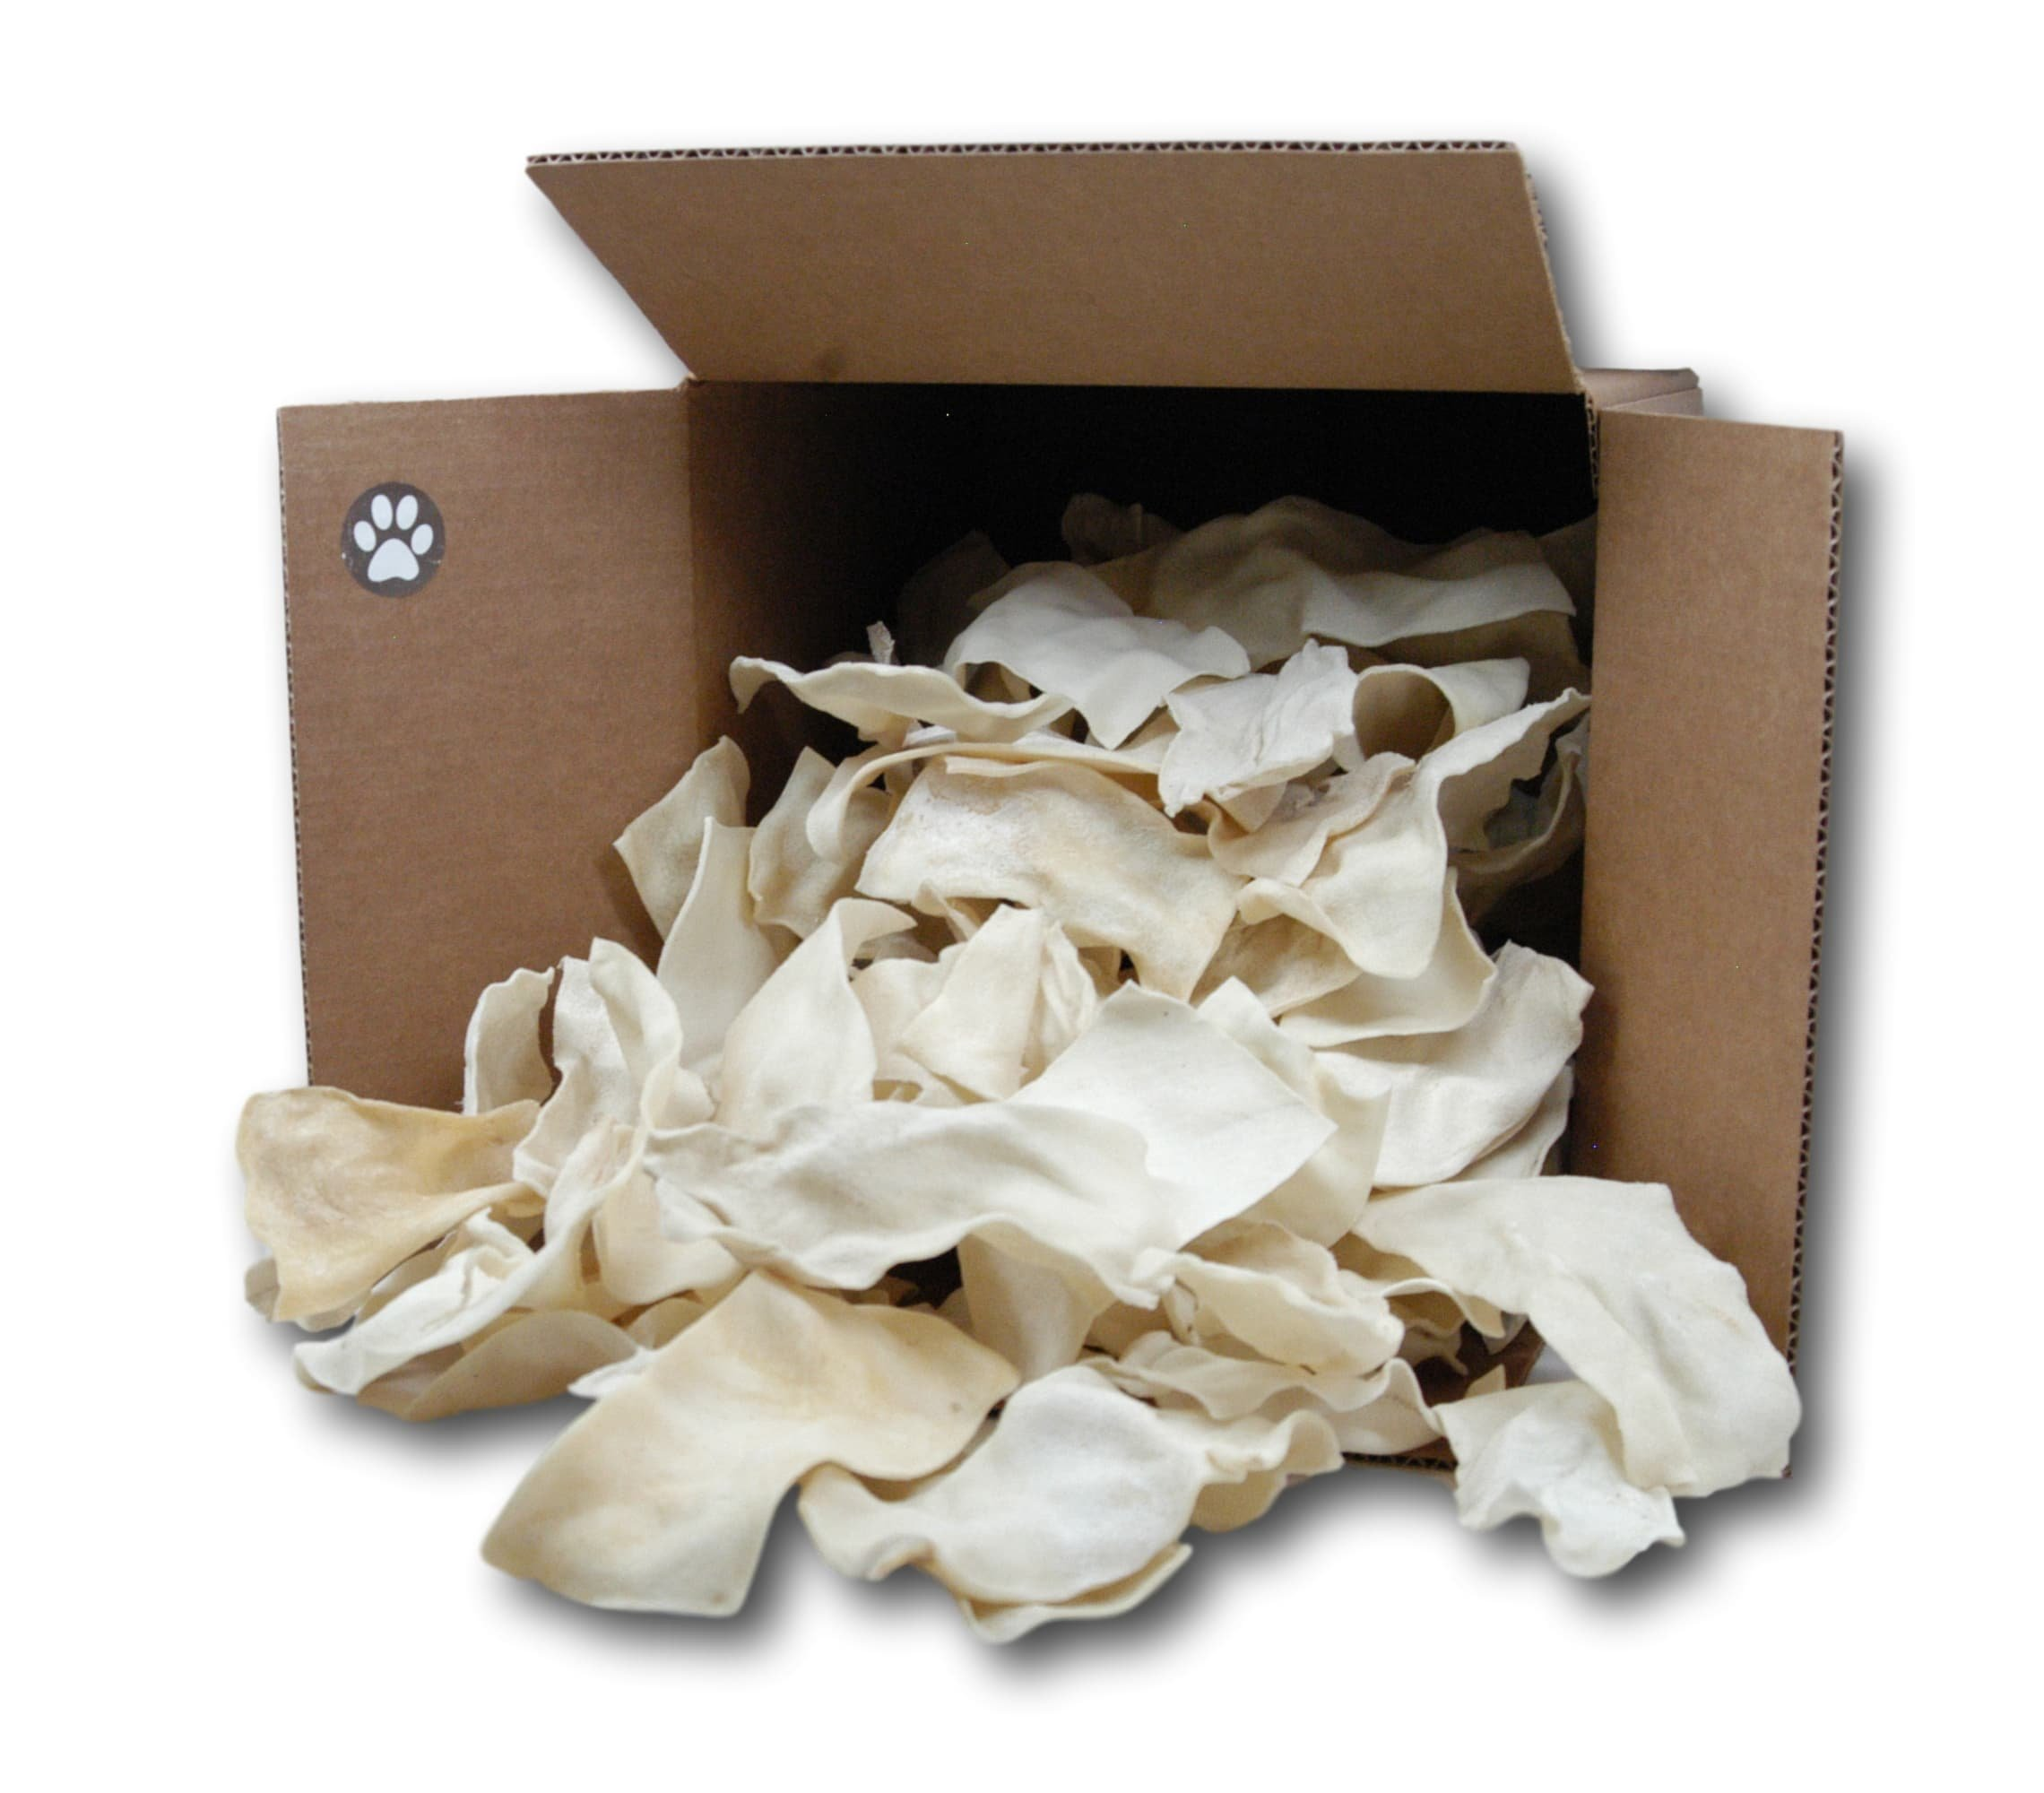 Natural Rawhide Chips For Dogs Bulk Rawhide Dog Treats (3Lb) by Top Dog Chews